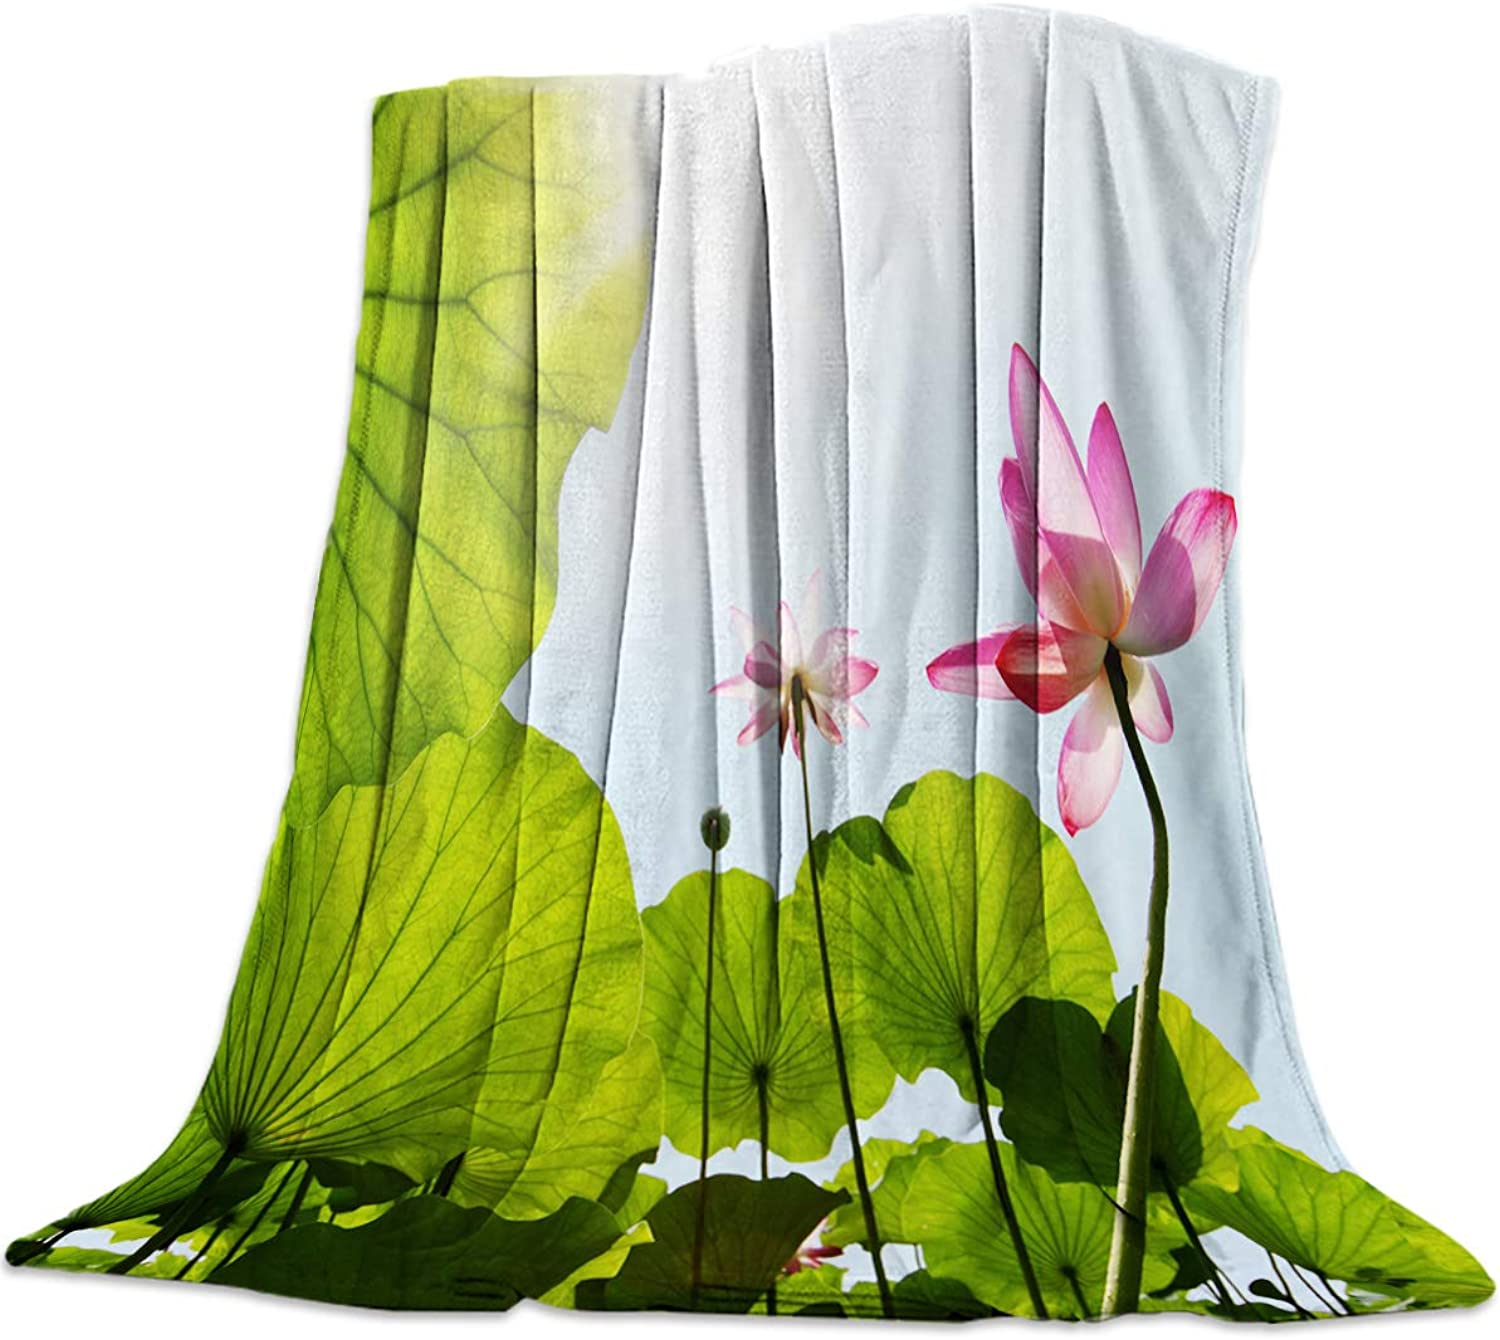 YEHO Art Gallery 49x59 Inch Flannel Fleece Bed Blanket Soft ThrowBlankets for Girls Boys,Fresh Landscape Lotus with Leaf Sun Pattern,Cozy Lightweight Blankets for Bedroom Living Room Sofa Couch